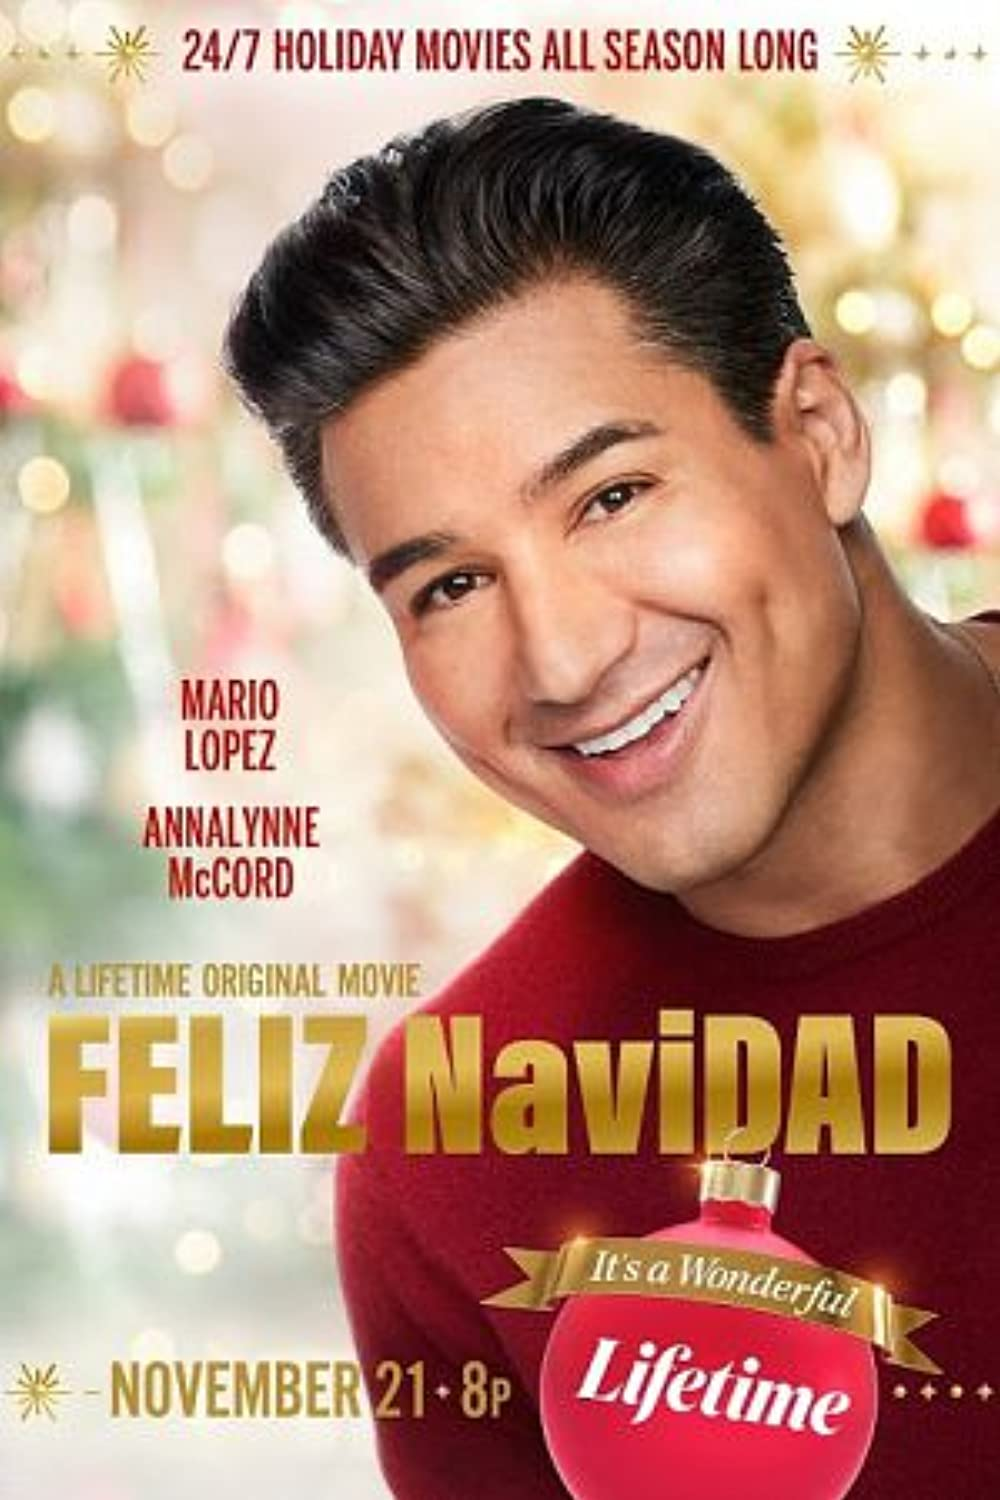 """Movie Poster for Lifetime's Feliz NaviDAD, released November 21st, 2020. The poster features Mario Lopez smiling and wearing a red sweater over a blurred out, glittery background of what appears to be a Christmas tree. The image is overlaid with the words """"24/7 HOLIDAY MOVIES ALL SEASON LONG"""" at the top. """"MARIO LOPEZ"""" and """"ANNALYNNE MCCORD"""" in the middle. At the bottom, the movie title in gold lettering """"A Lifetime Original Movie FELIZ NaviDAD"""" sits above """"November 21 8pm"""" and an image of a red Christmas ornament and gold banner that say """"It's A Wonderful Lifetime."""" Flavorlab Sound provided full service audio post production for the film."""